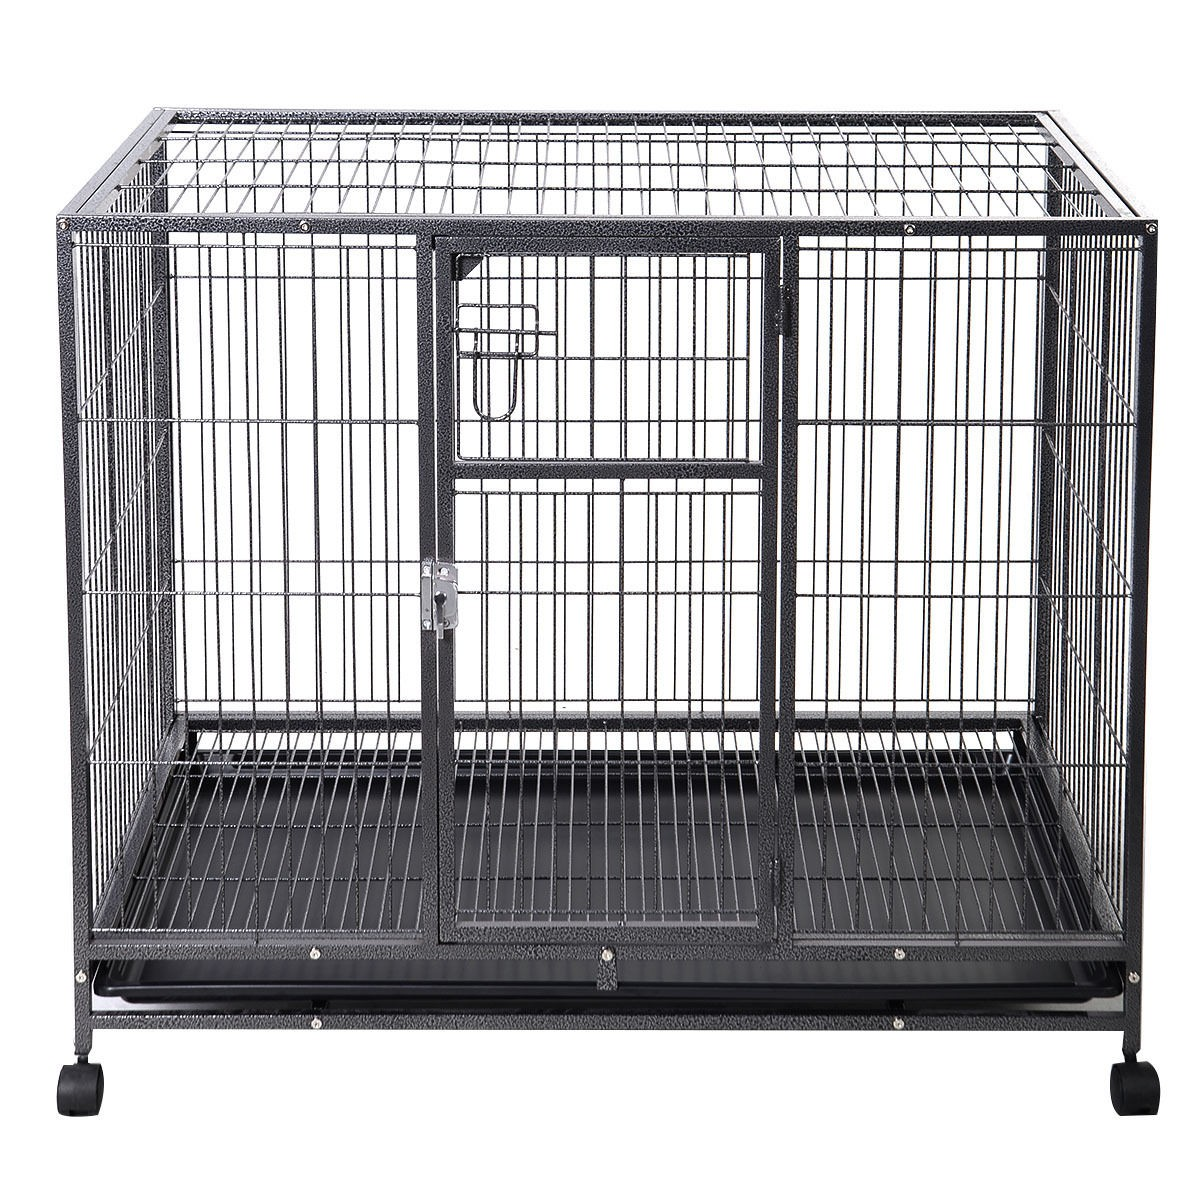 Portable Dog Kennels : Quot large dog kennel w wheels portable pet puppy carrier